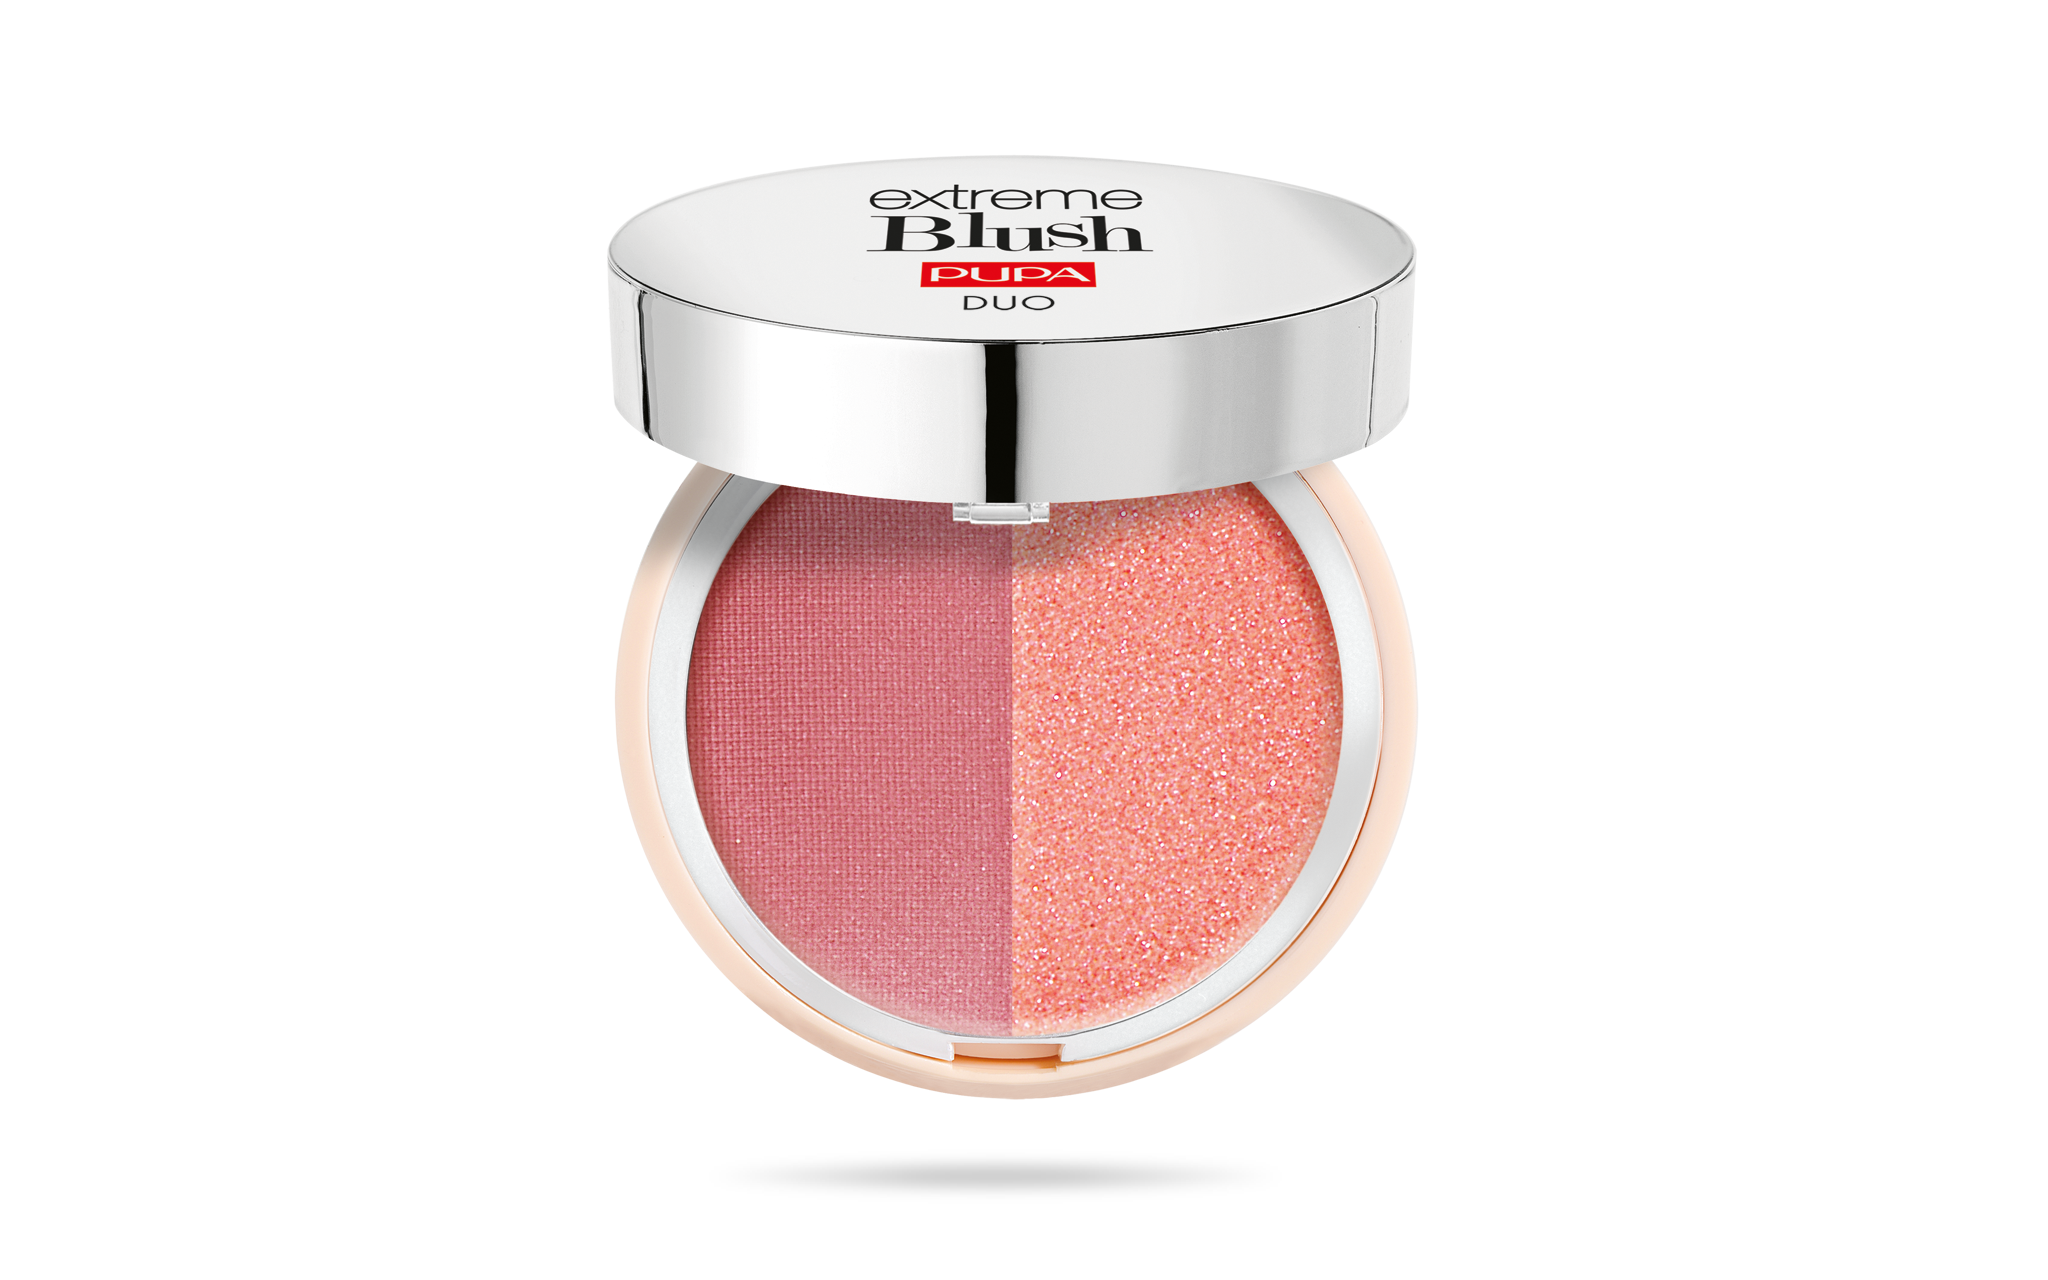 Pupa EXTREME BLUSH DUO 110 Institut Conny Delvaux